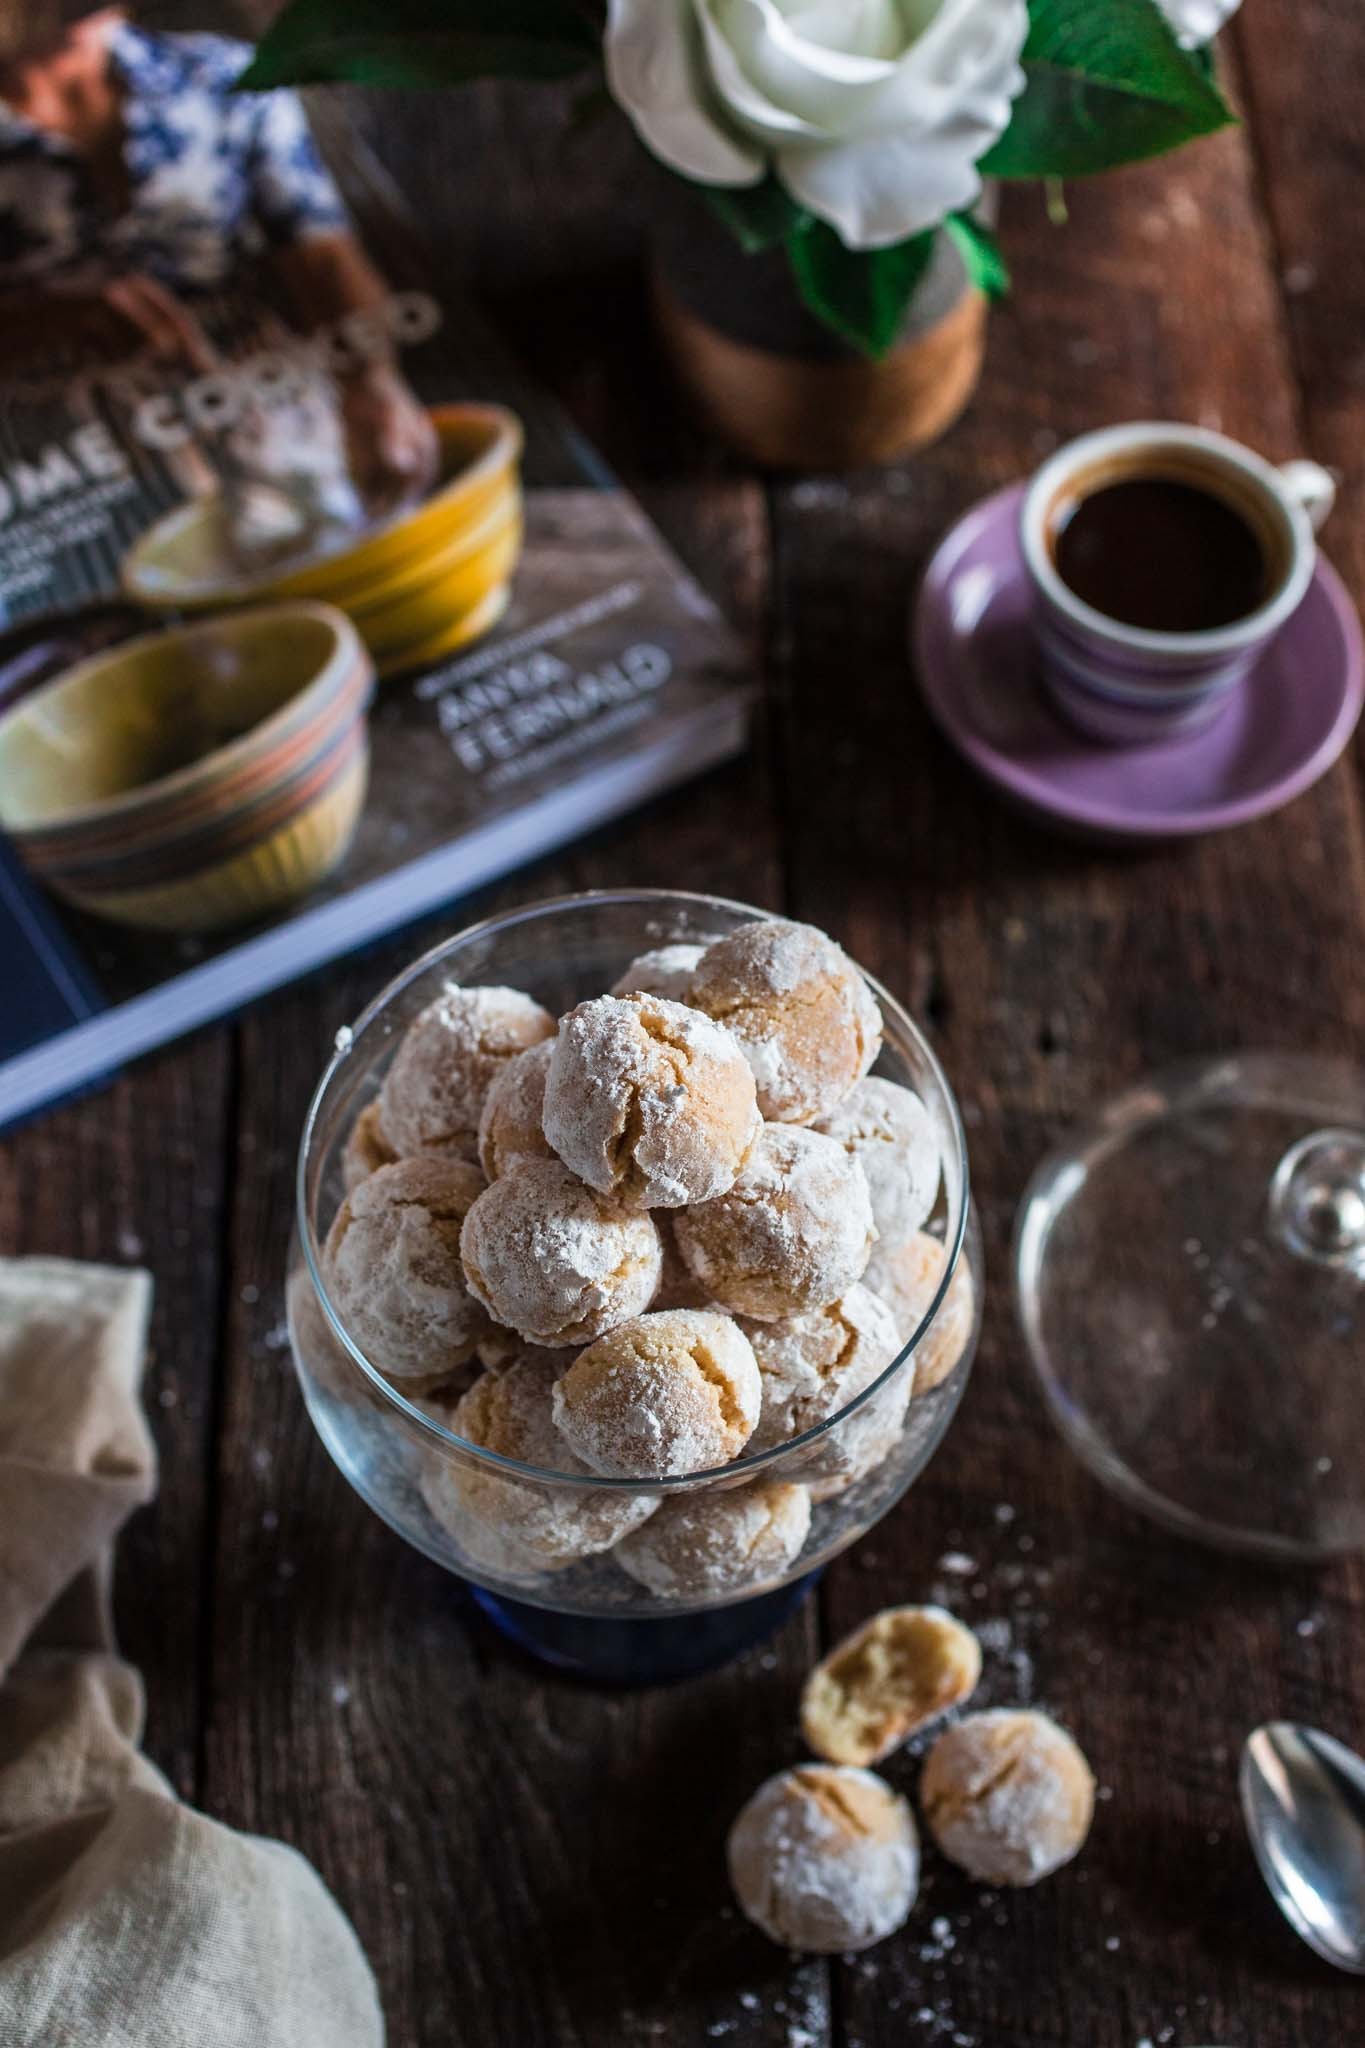 Amaretti Cookies   www.oliviascuisine.com   These chewy almond-flavored cookies are the most perfect accompaniment for a cup of coffee or Italian espresso. You might wanna double the batch, because they usually go very quickly!